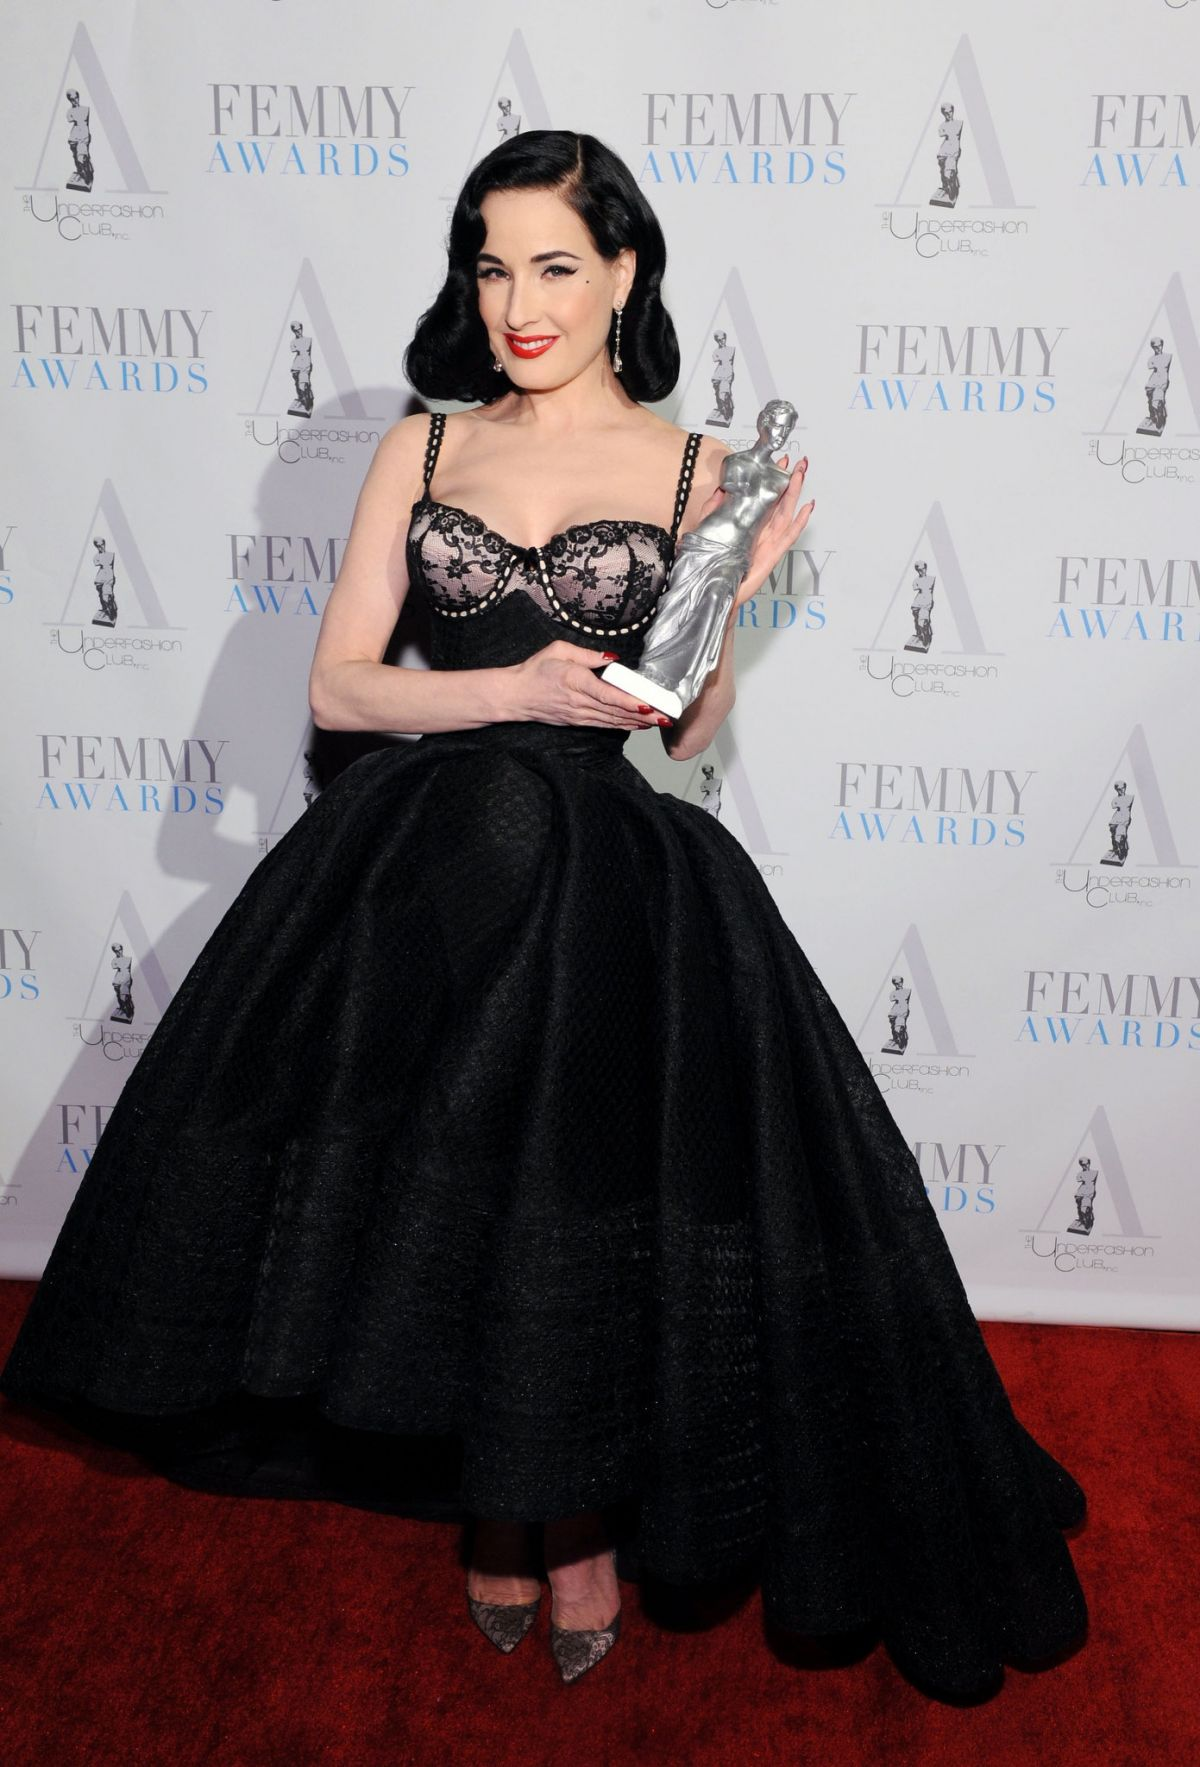 DITA VON TEESE at 2016 Femmy Awards 02/02/2016